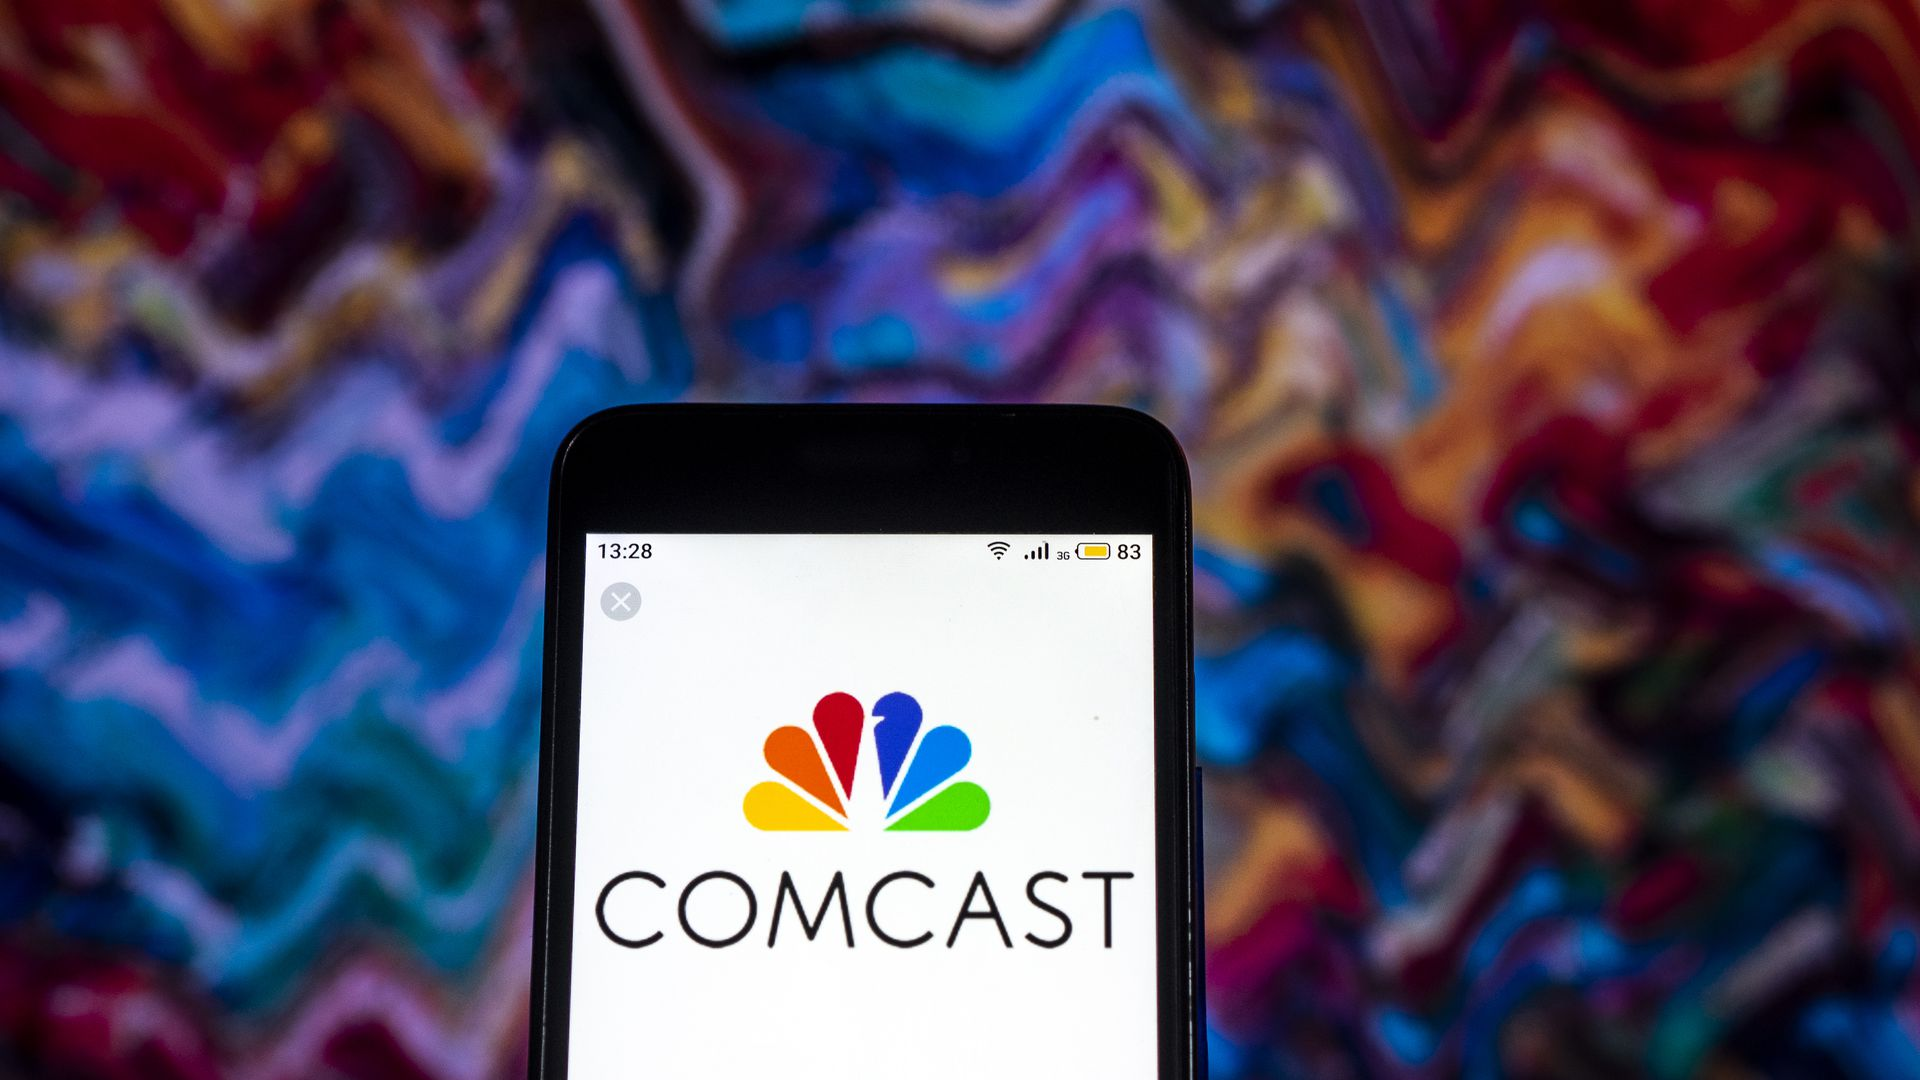 In this image, a phone with the Comcast logo is held up against psychedelic background.